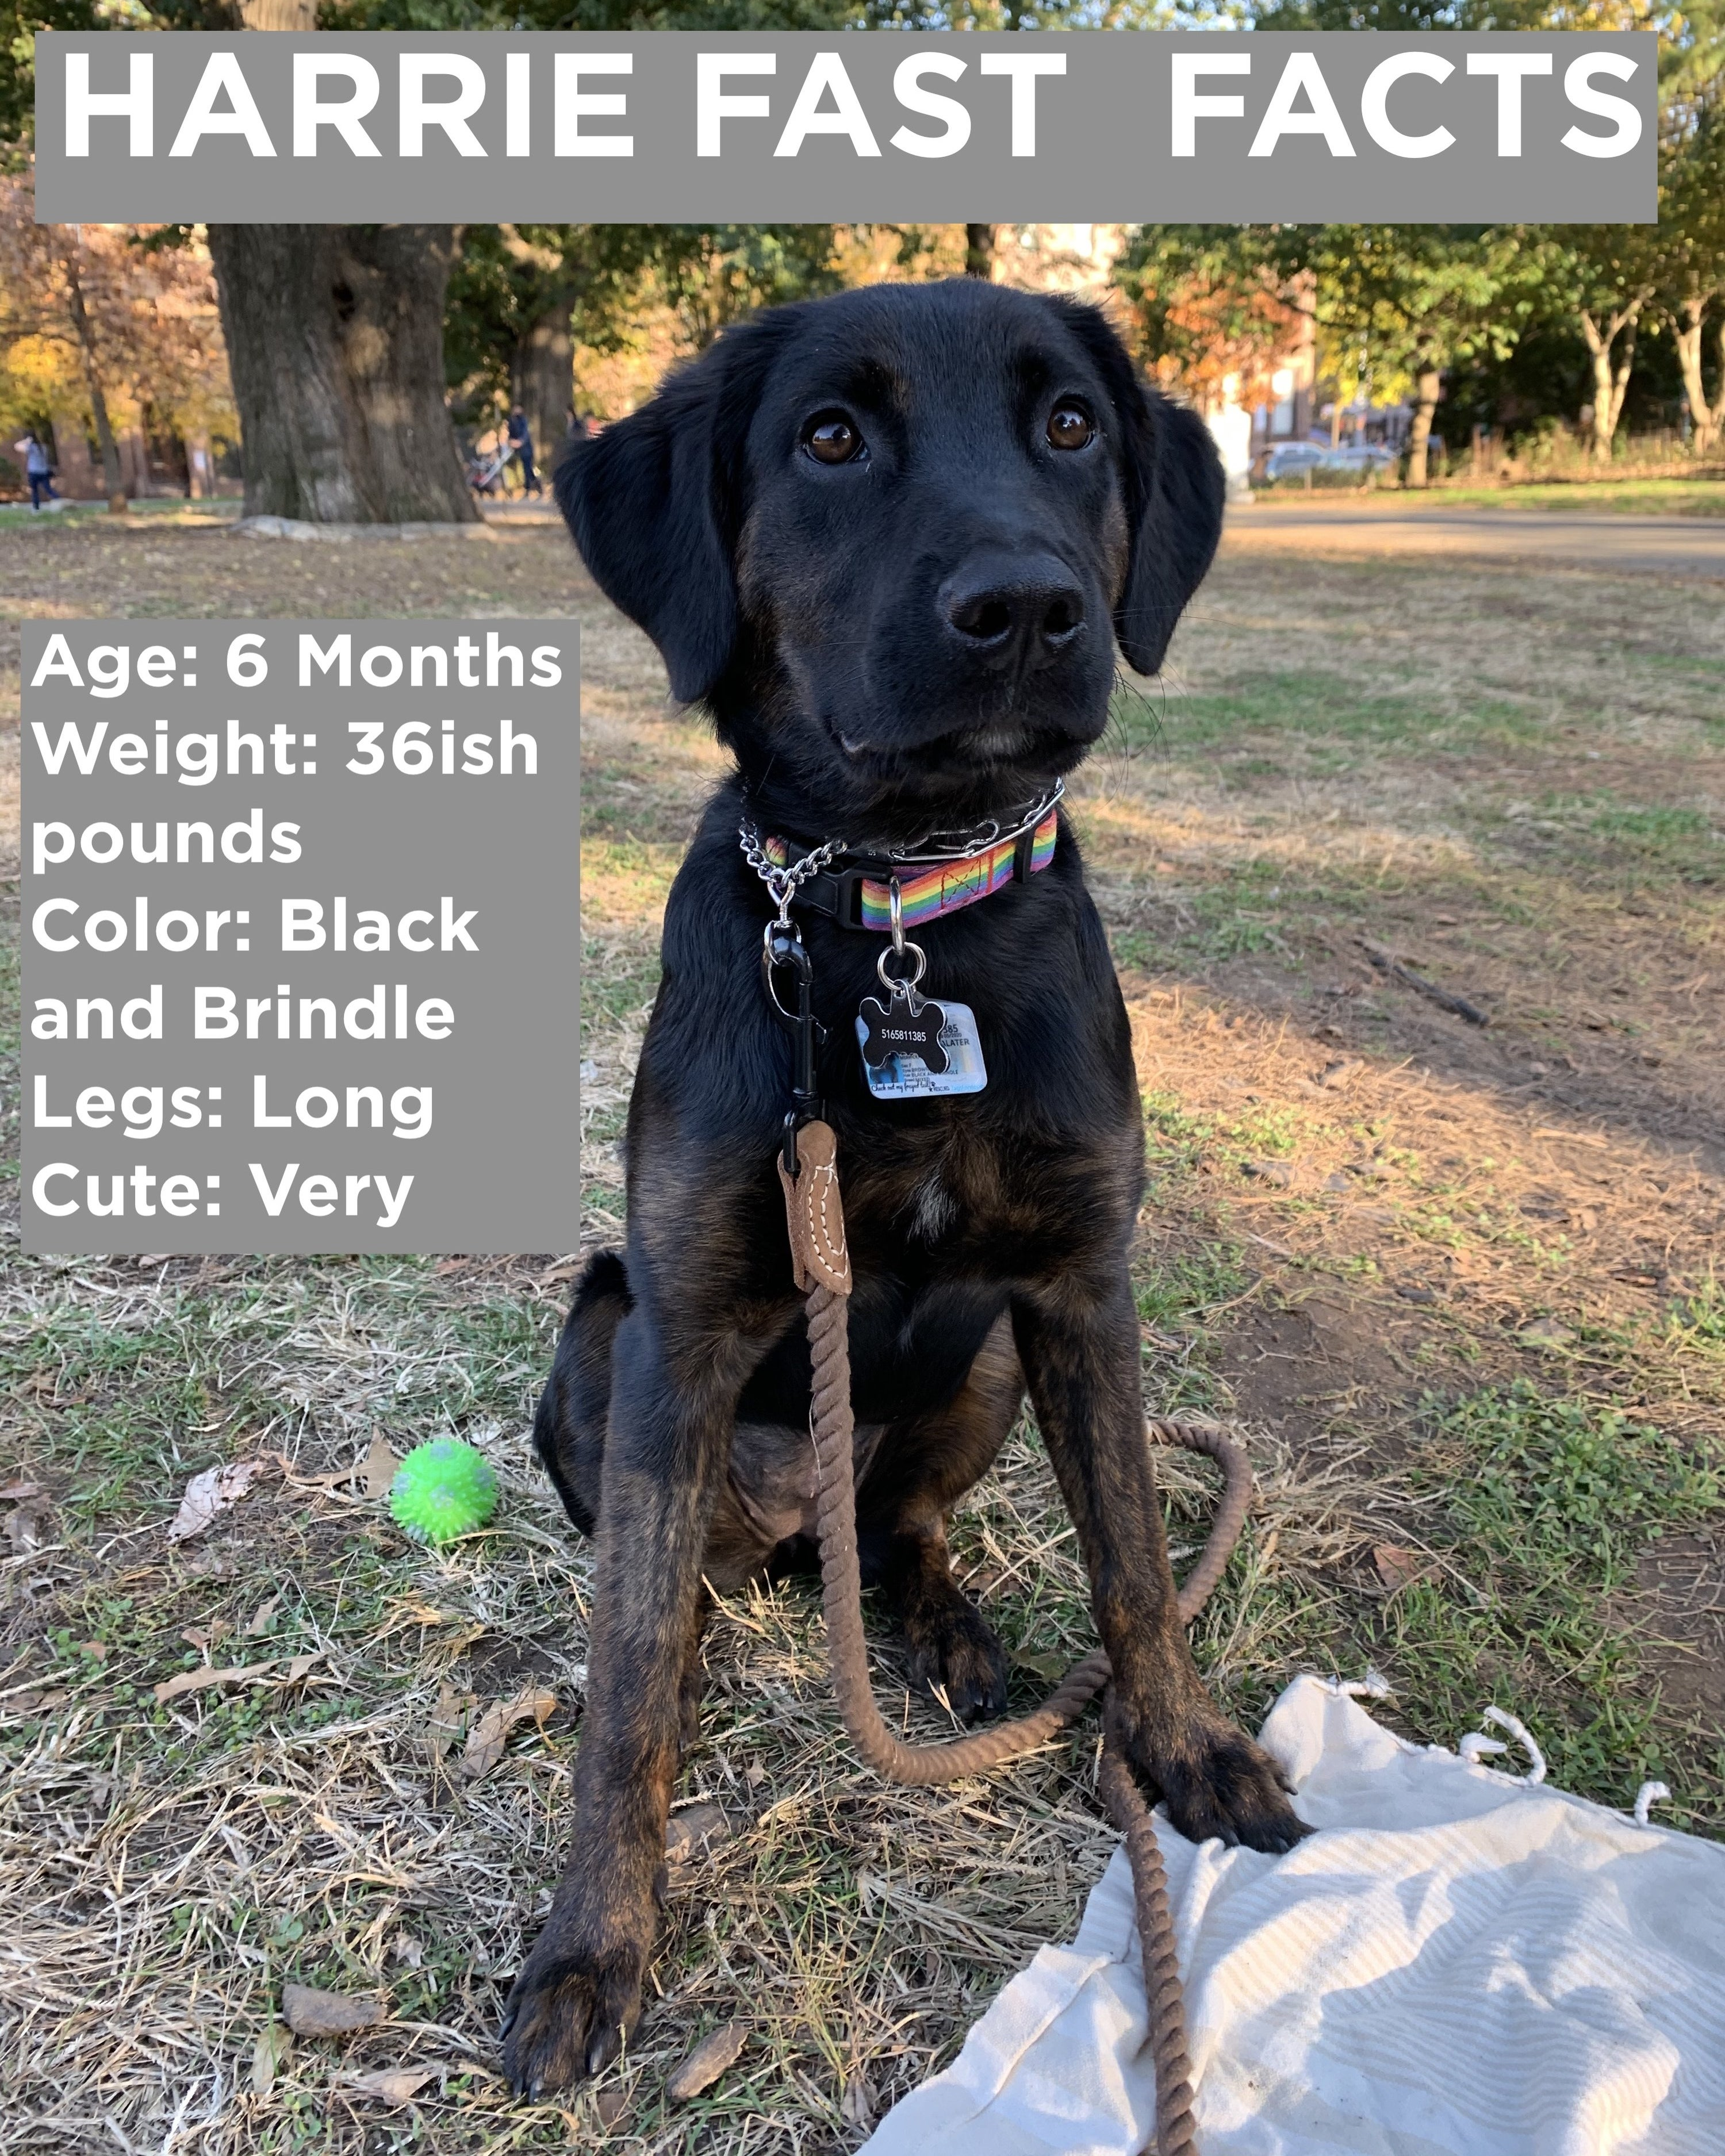 Picture of a black dog in the park and captions that say Harrie Fast facts, age 6 months, weight 36 pounds, color black and brindle, legs long, cute very